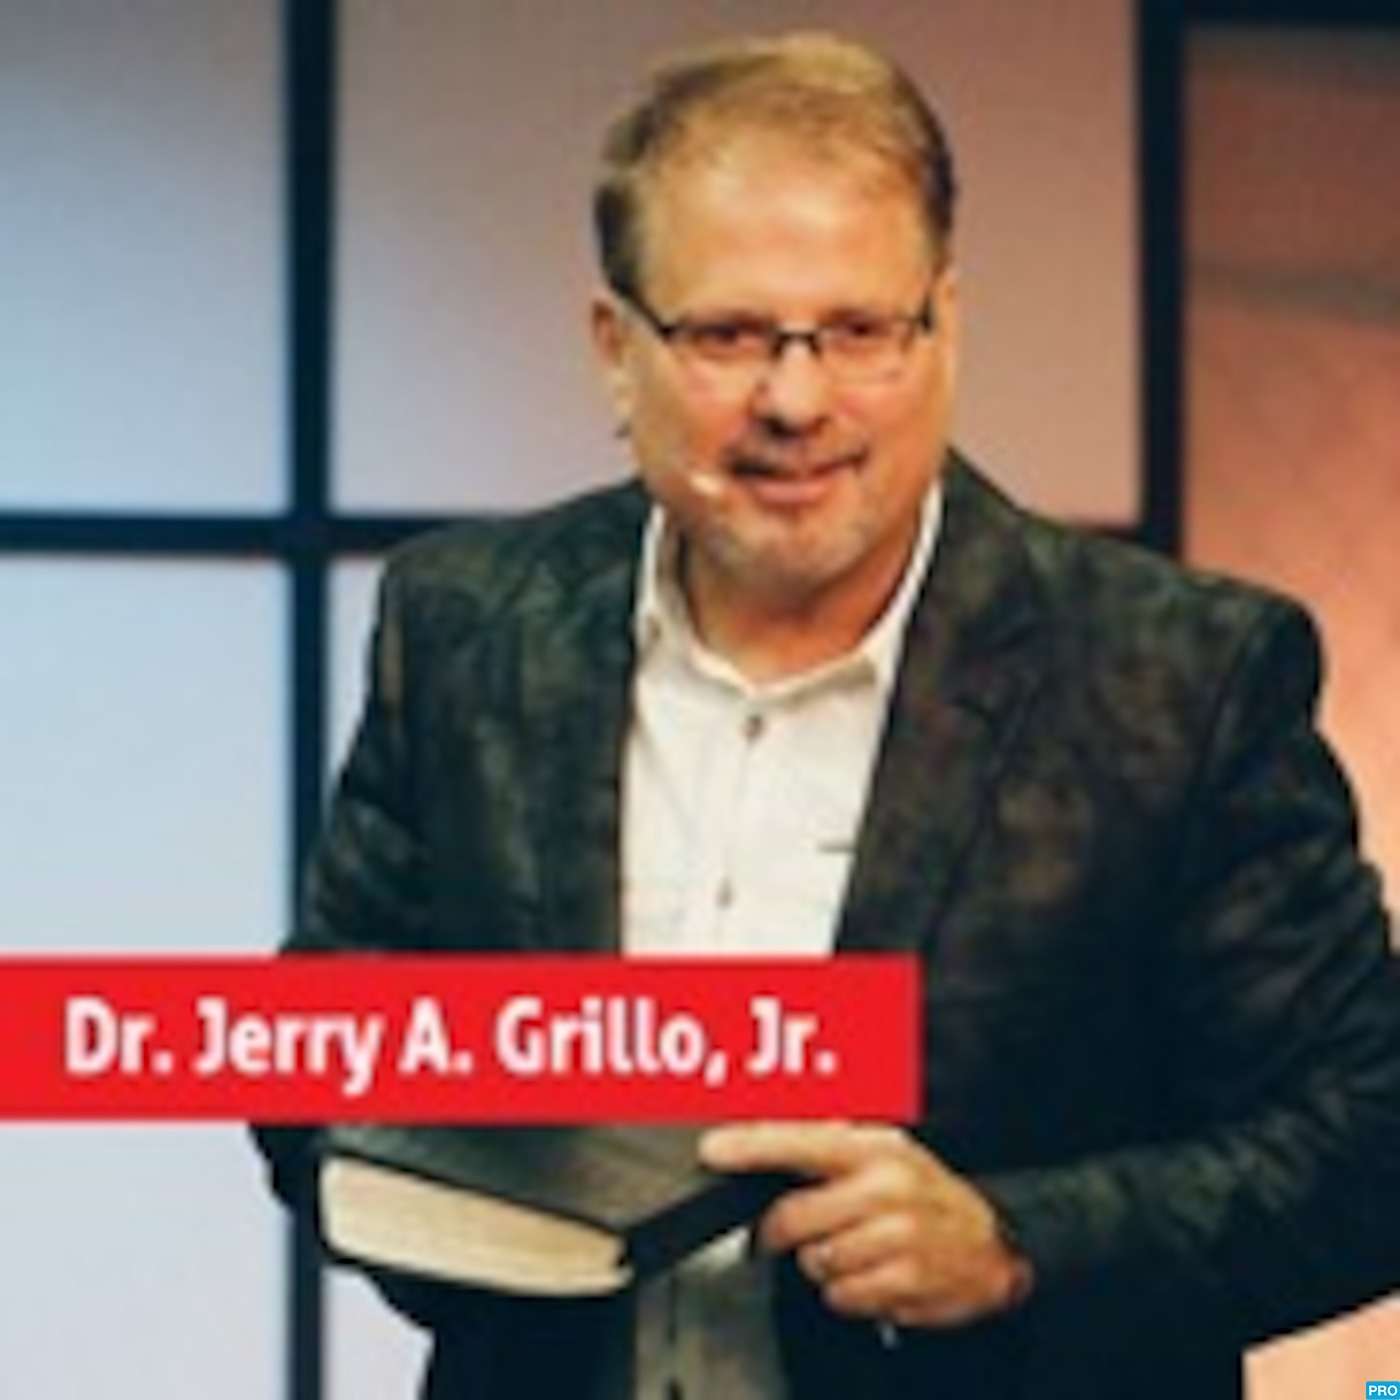 Dr. Jerry A. Grillo, Jr.